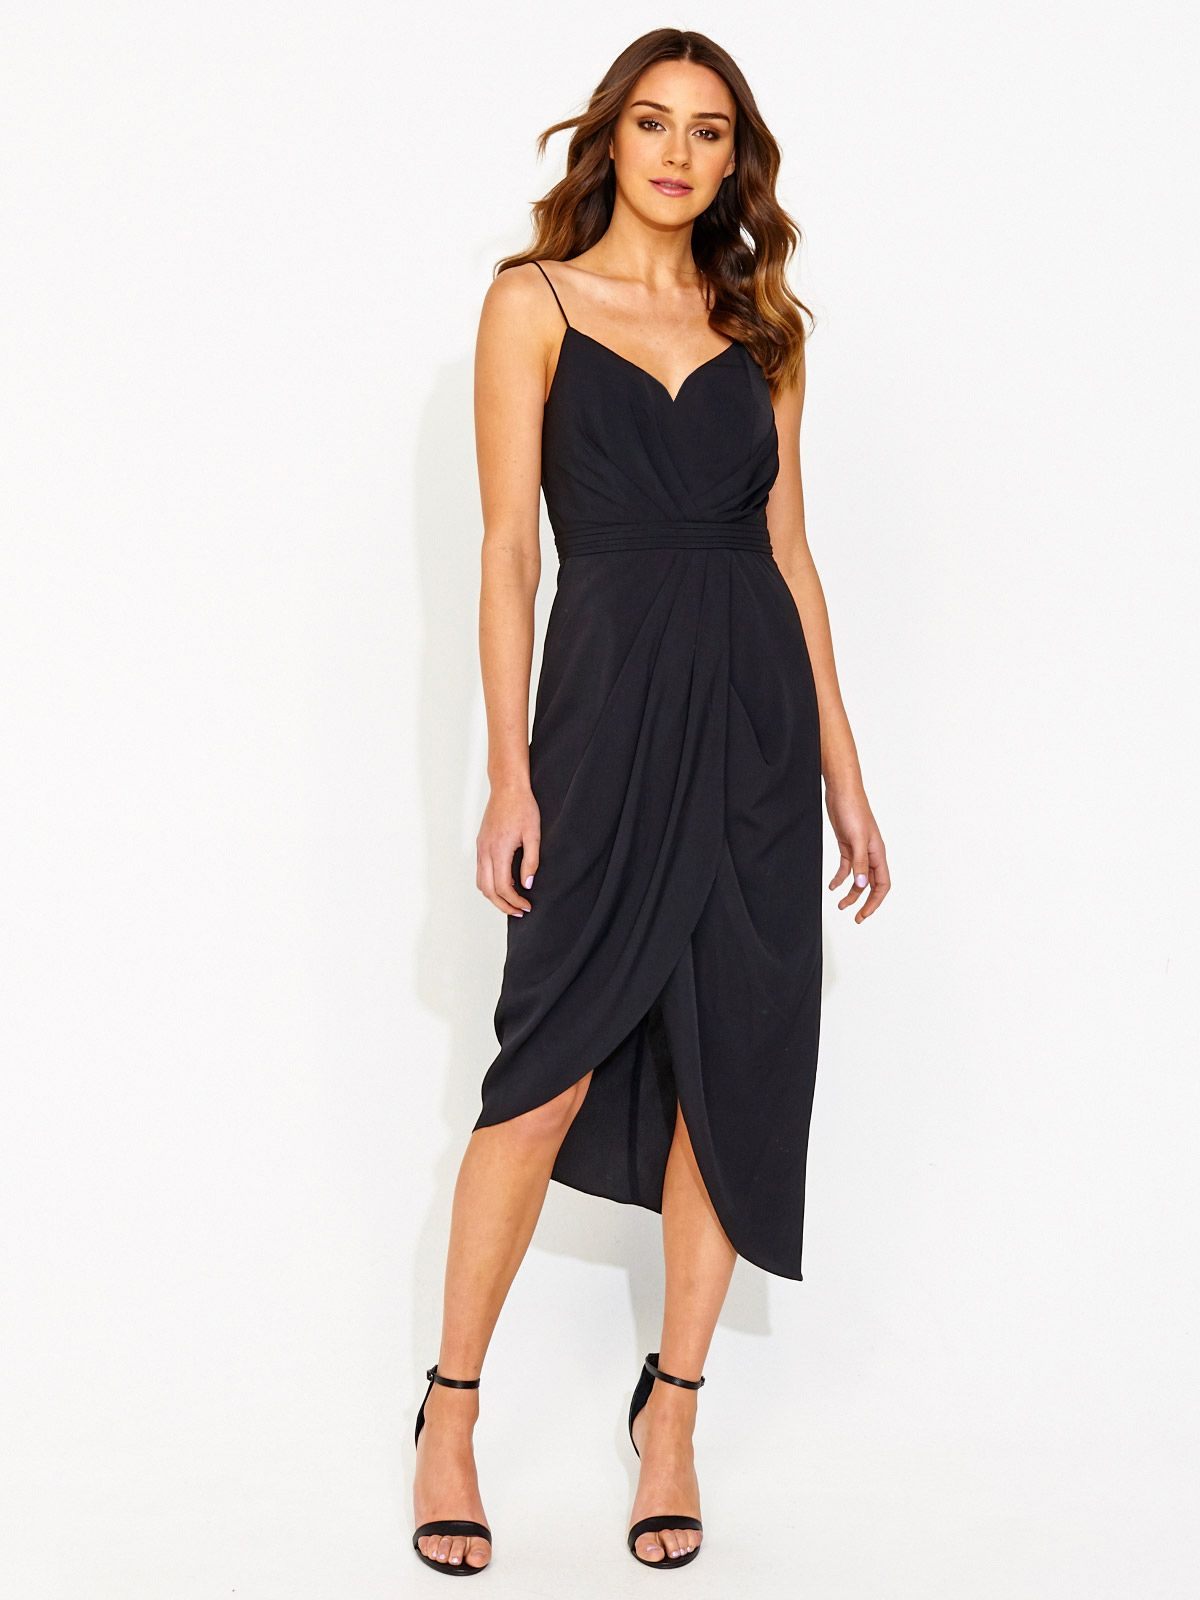 Shop For Romantic Drape Front Dress In Black From Portmans At Westfield Geelong Browse The Latest Styles Online And Buy A Store